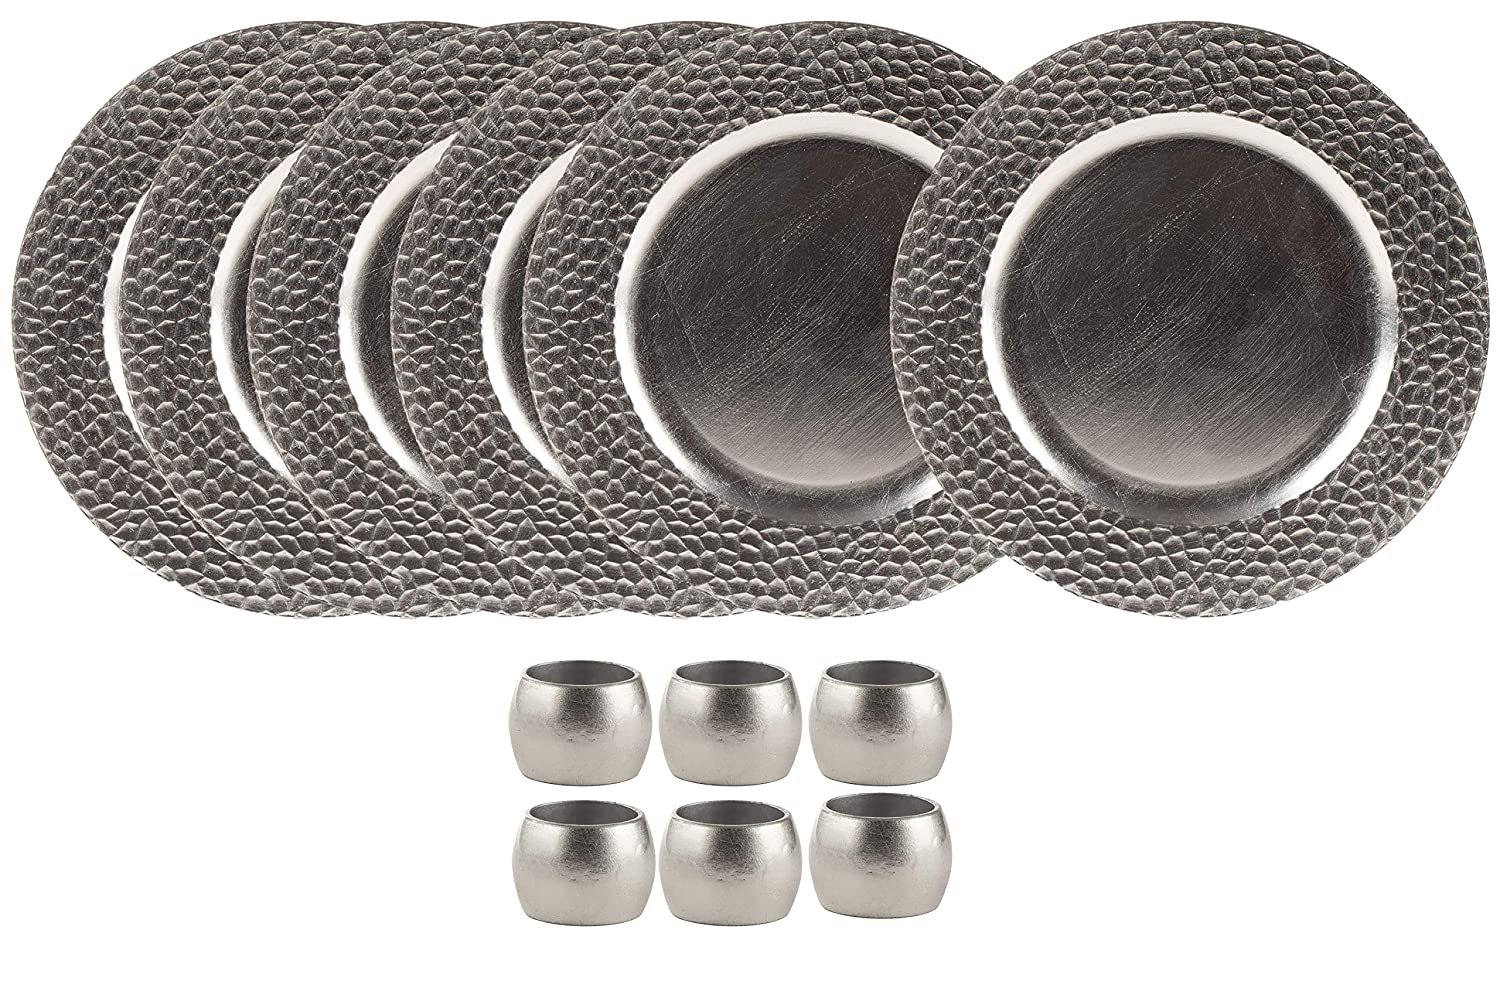 Round Charger Plates and Napkin Rings Set - 6-Piece 13-Inch Silver Charger Plates with 6-Piece Napkin Rings, For Special Events, Weddings, Banquets Juvale